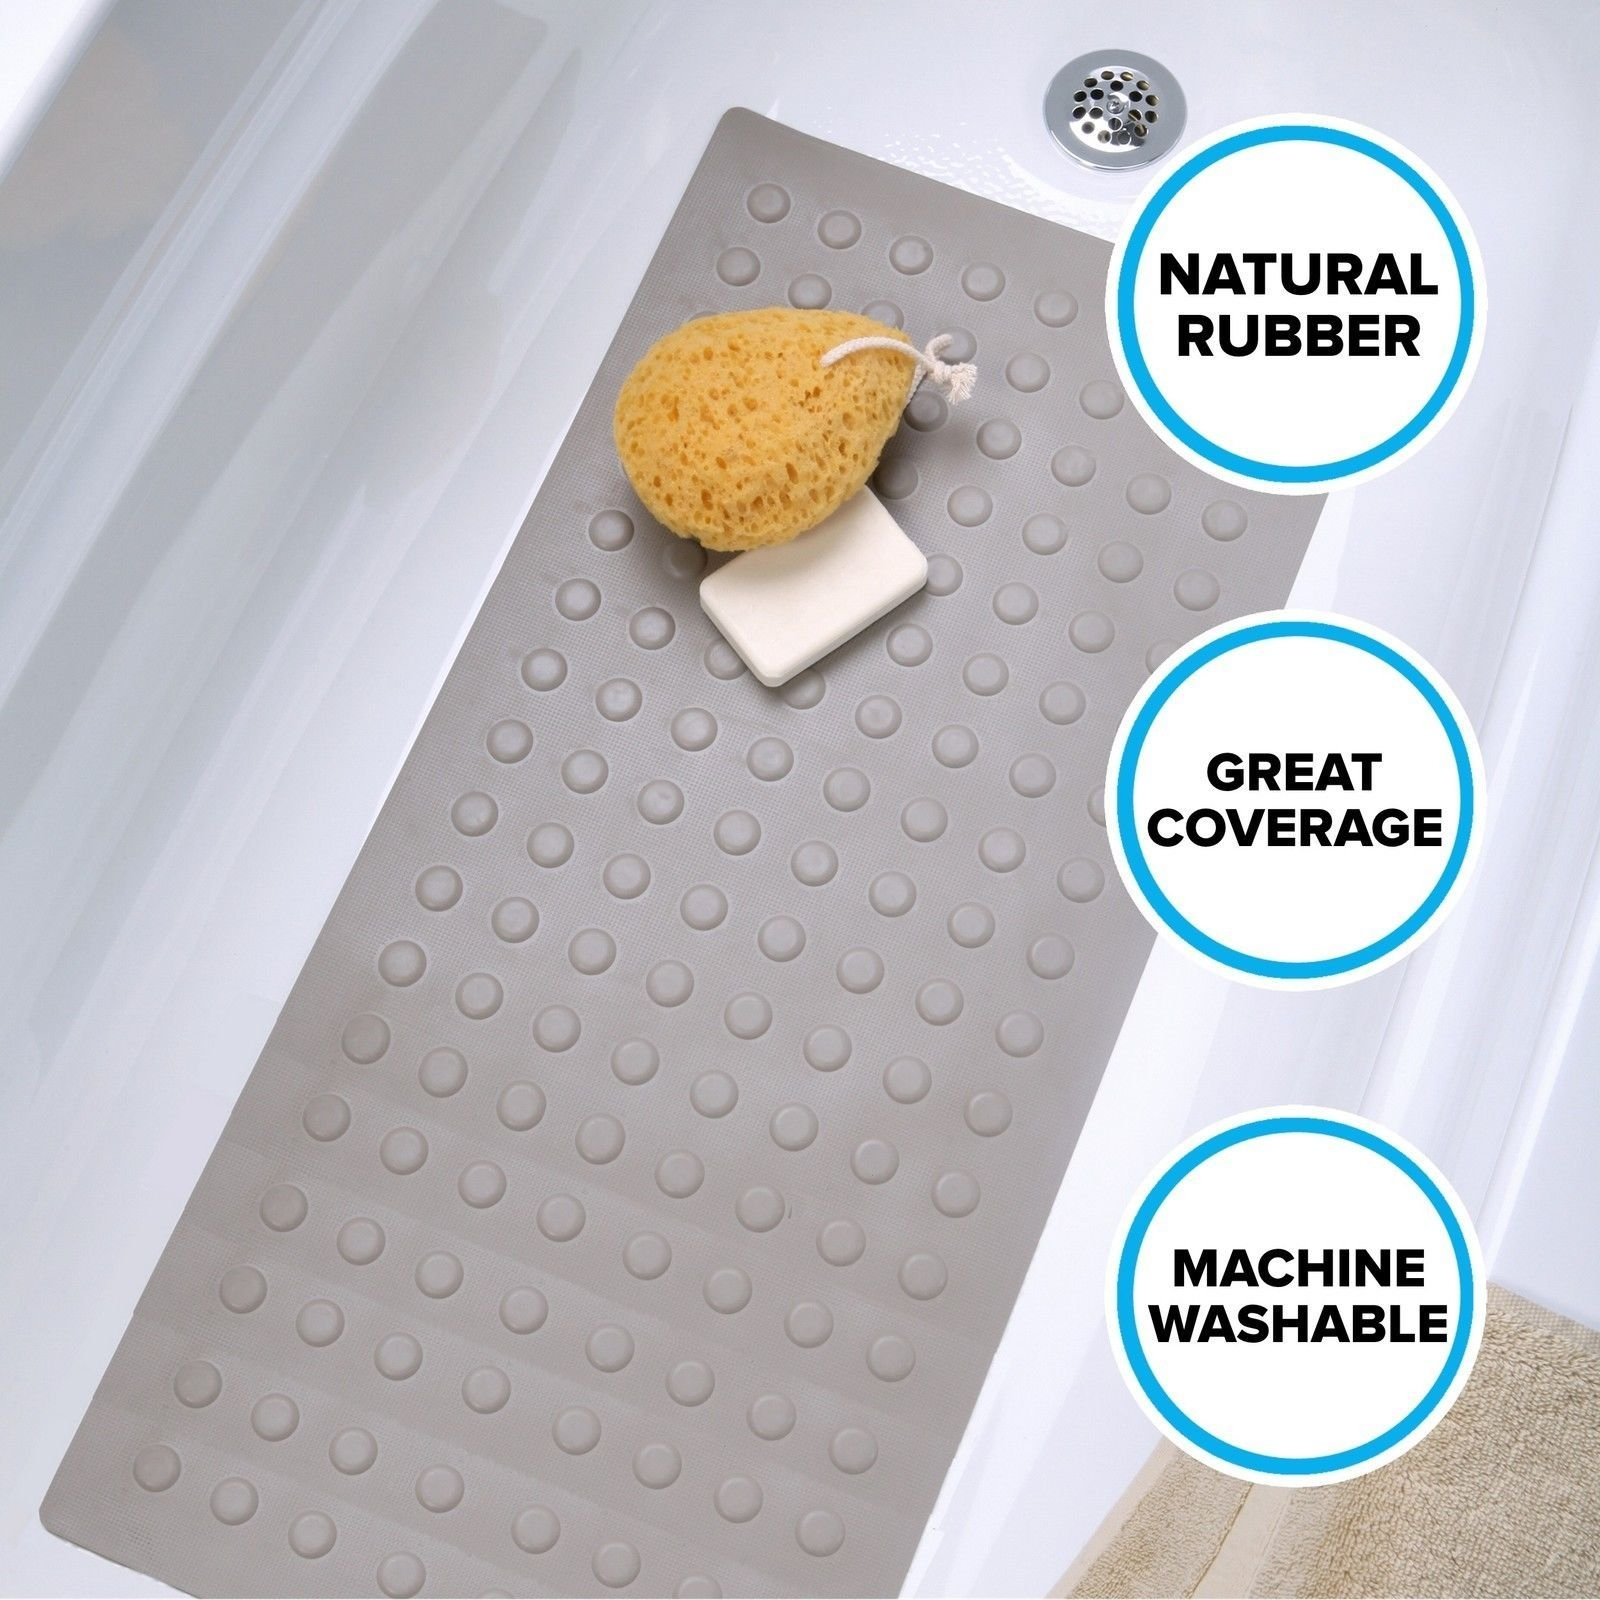 Rubber Bath Mat Machine Washable